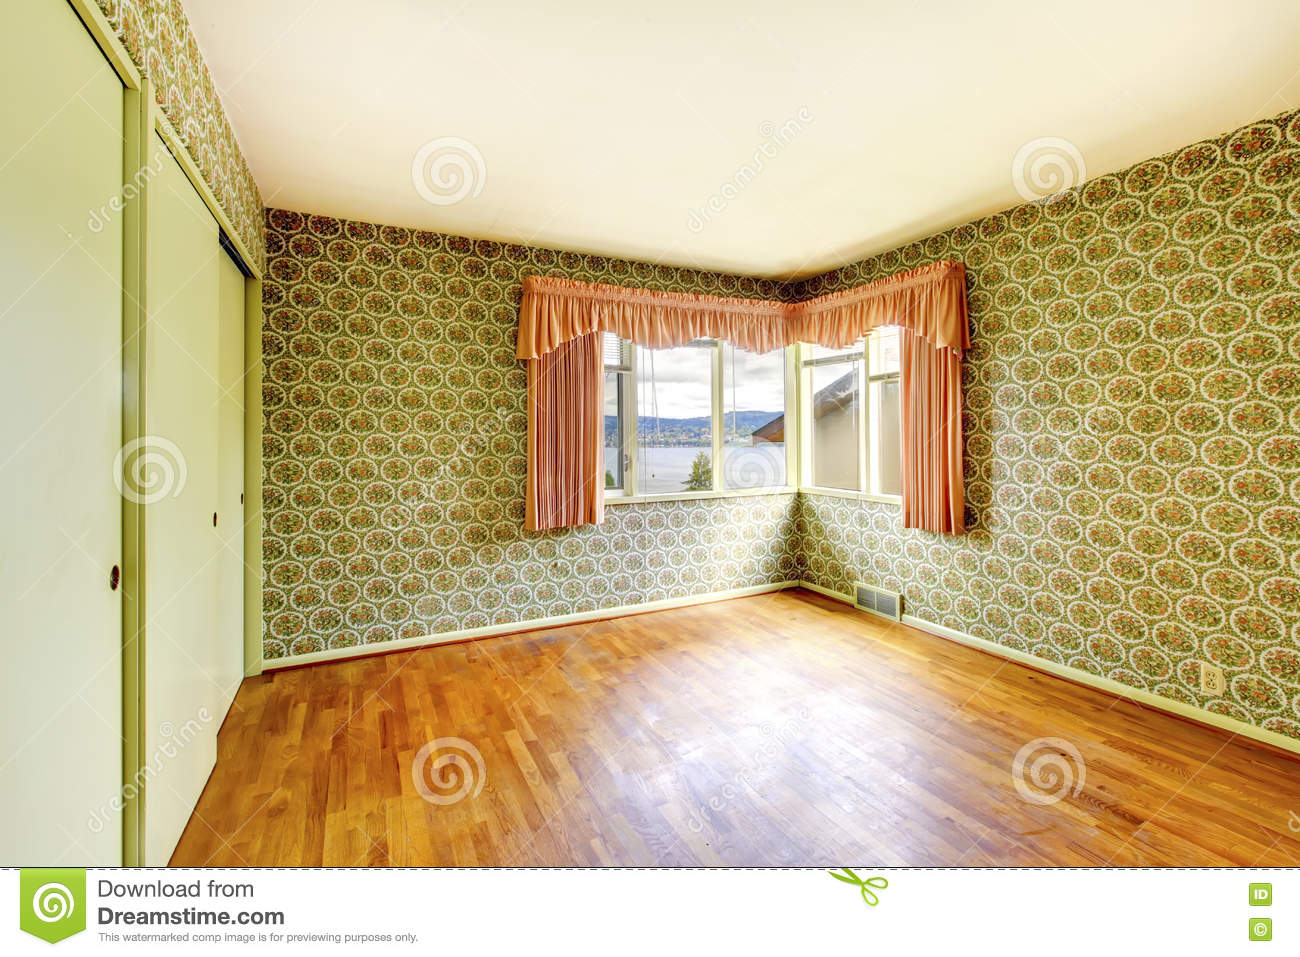 Empty Room With Hardwood Floor, Green Walls Decorated With Flora ...